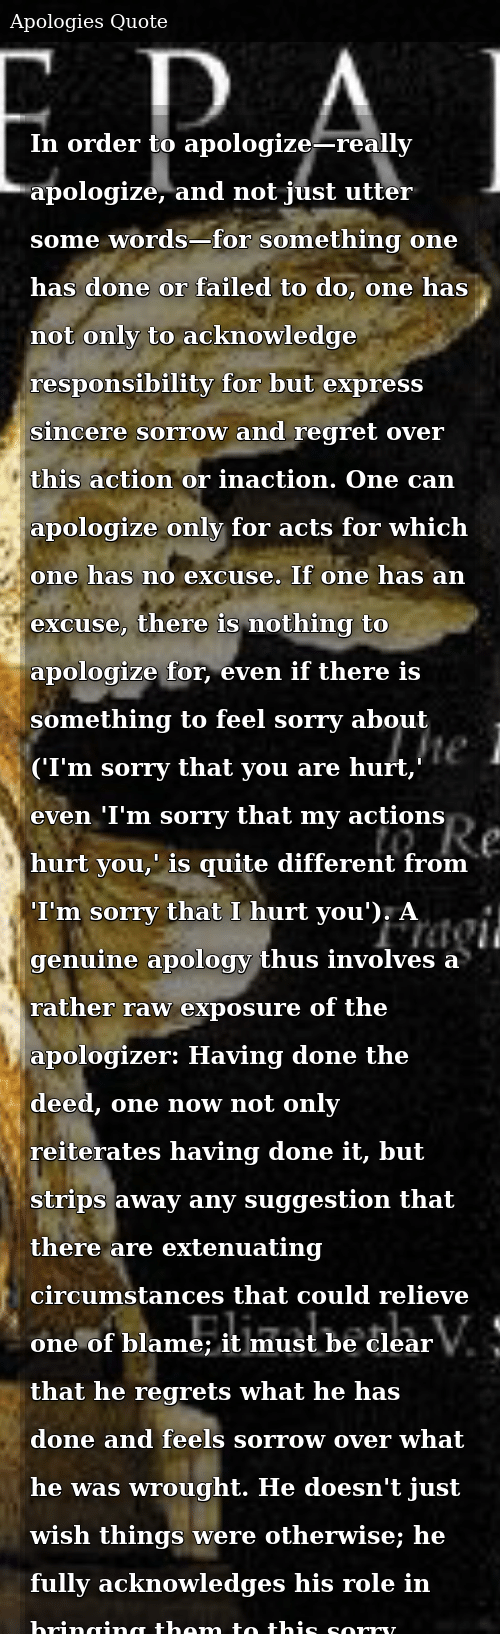 In Order to Apologize—really Apologize and Not Just Utter Some Words